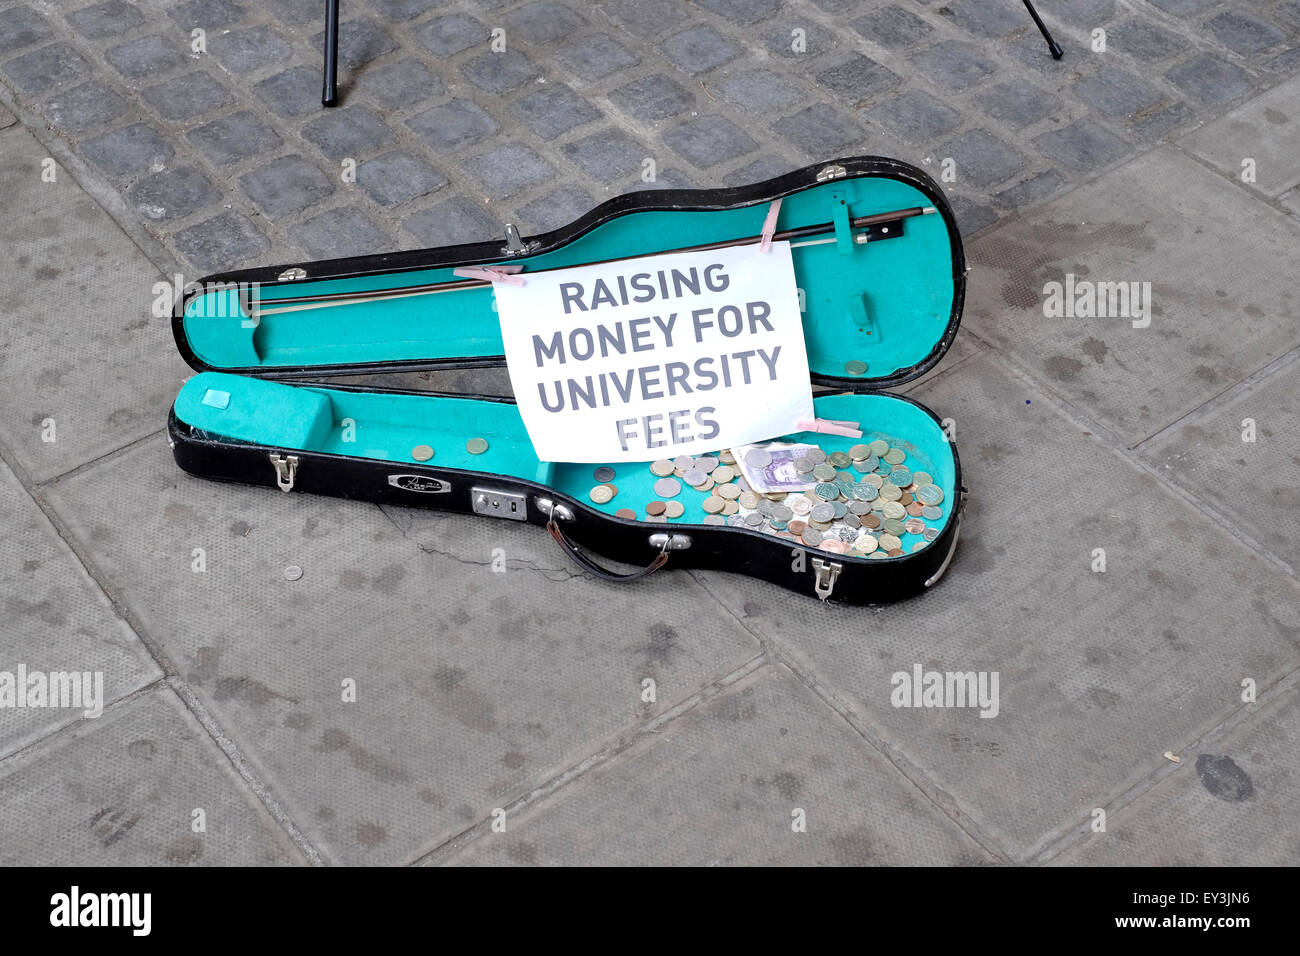 "A guitar case put on a pavement by two busker with a sign reading "" raising money for university fees"" - Stock Image"